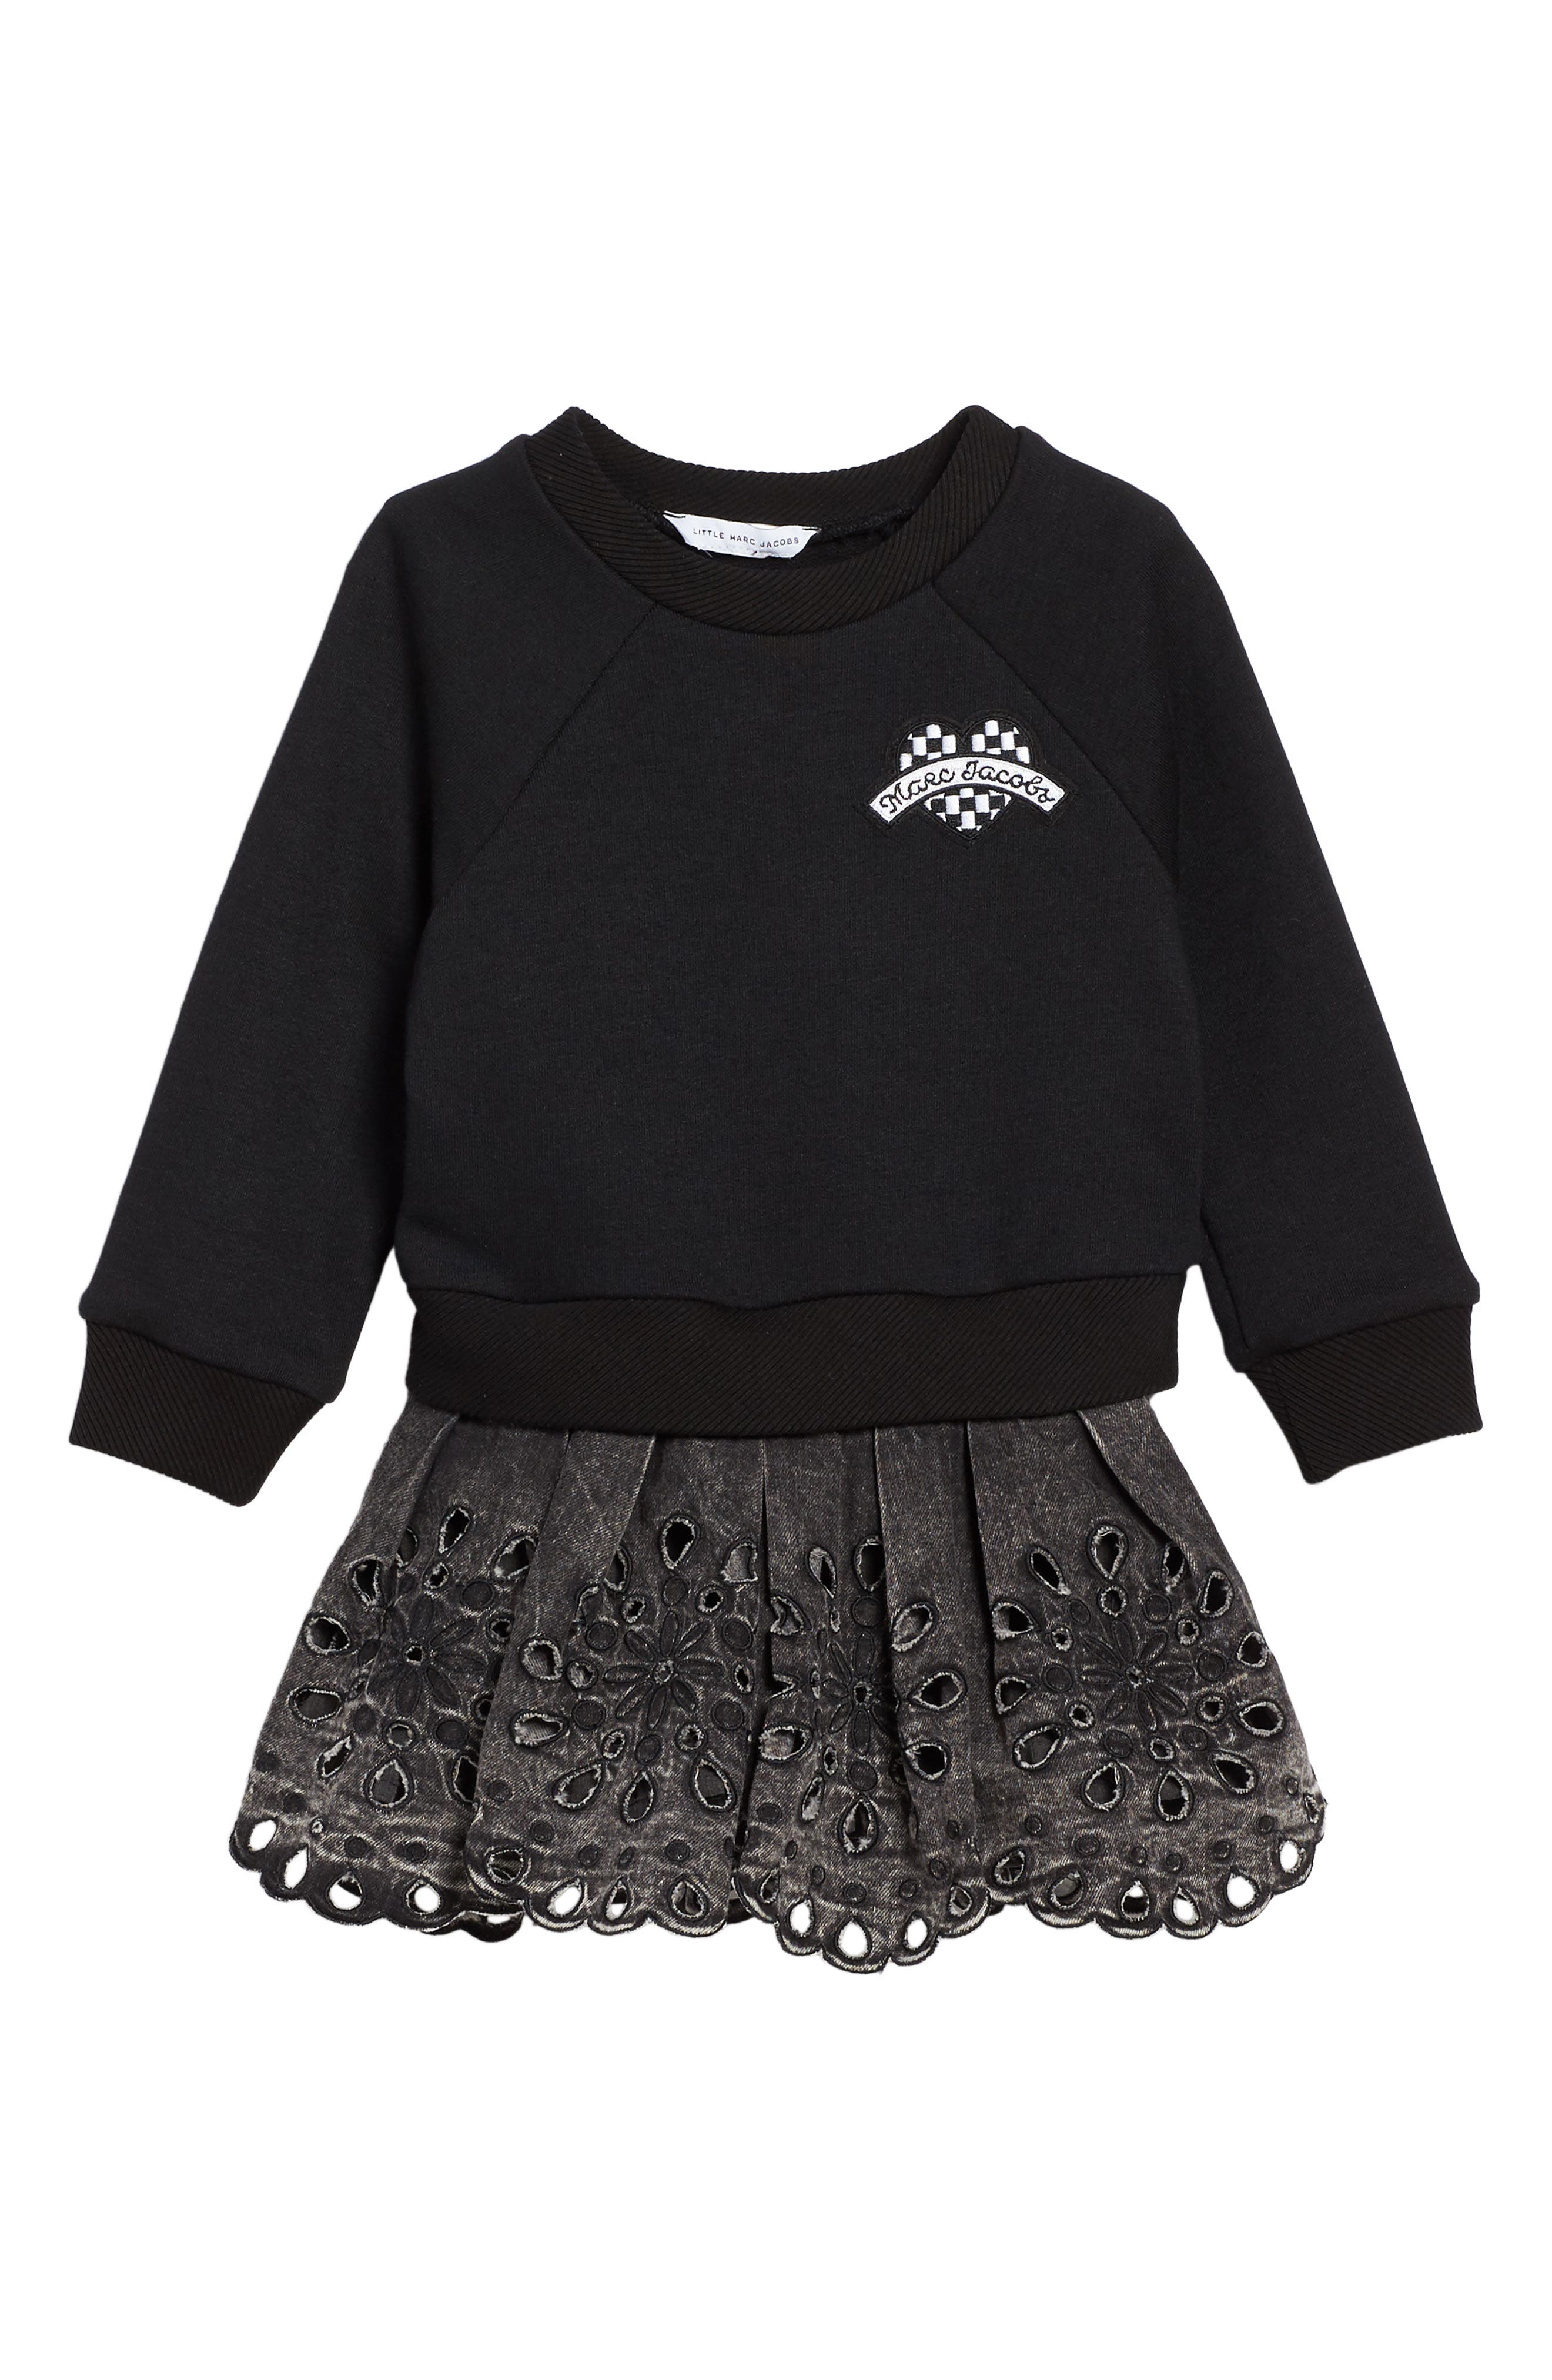 Sweatshirt & Skirt Set,                             Main thumbnail 1, color,                             001